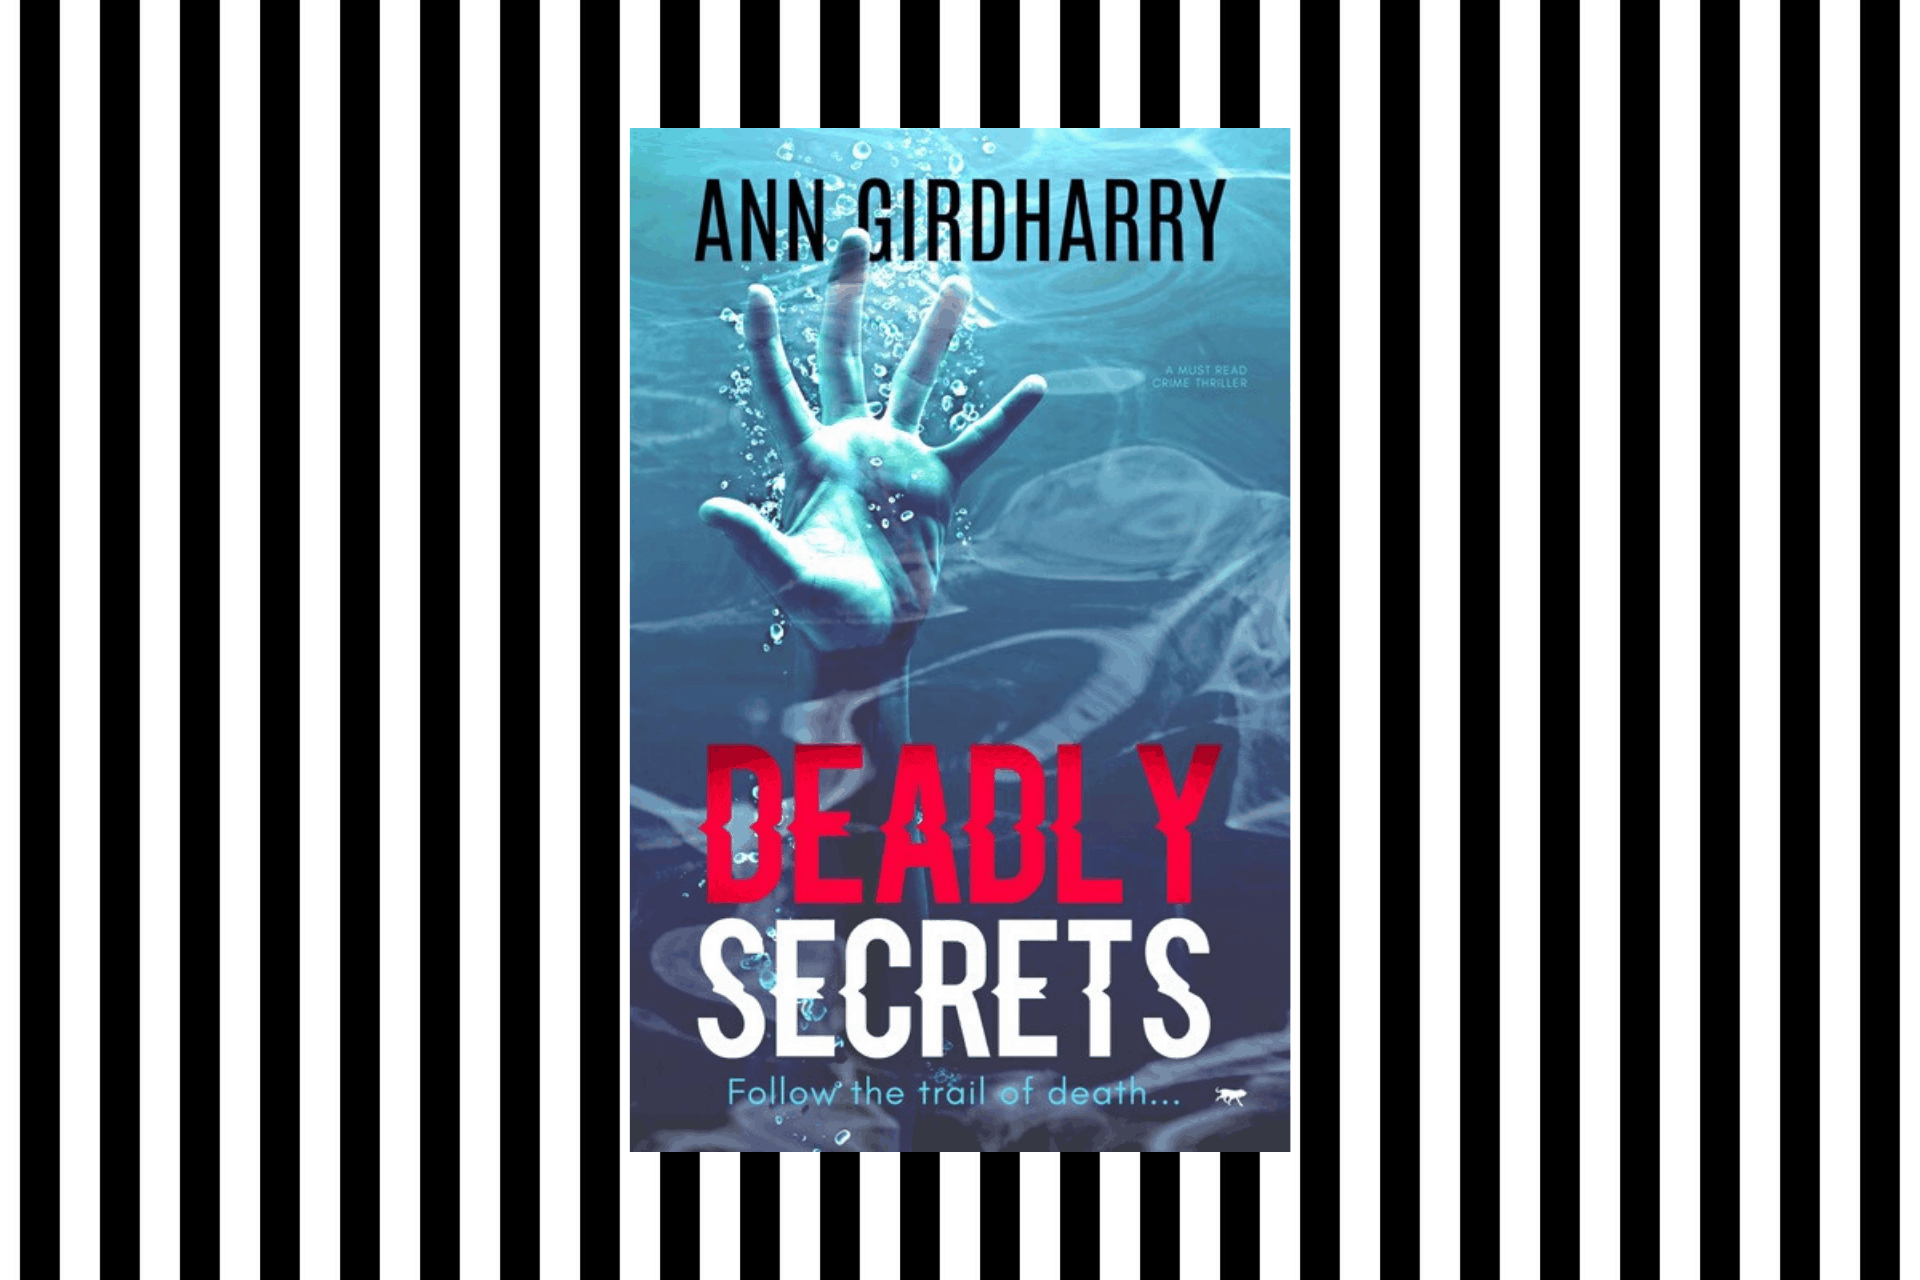 The cover of Deadly Secrets by Ann Girdharry